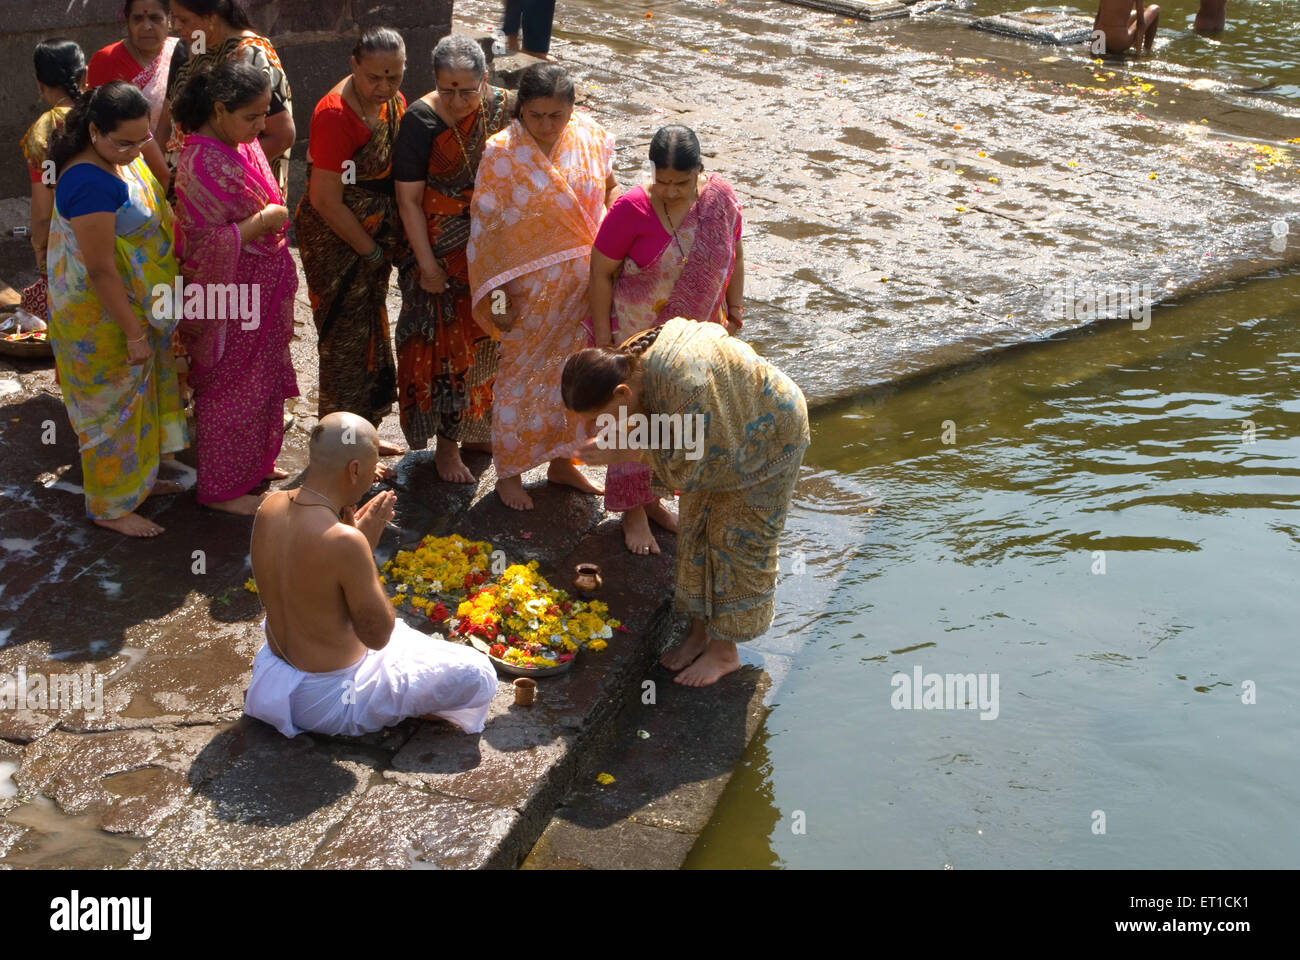 People performing ritual on bank of river NOMR - Stock Image